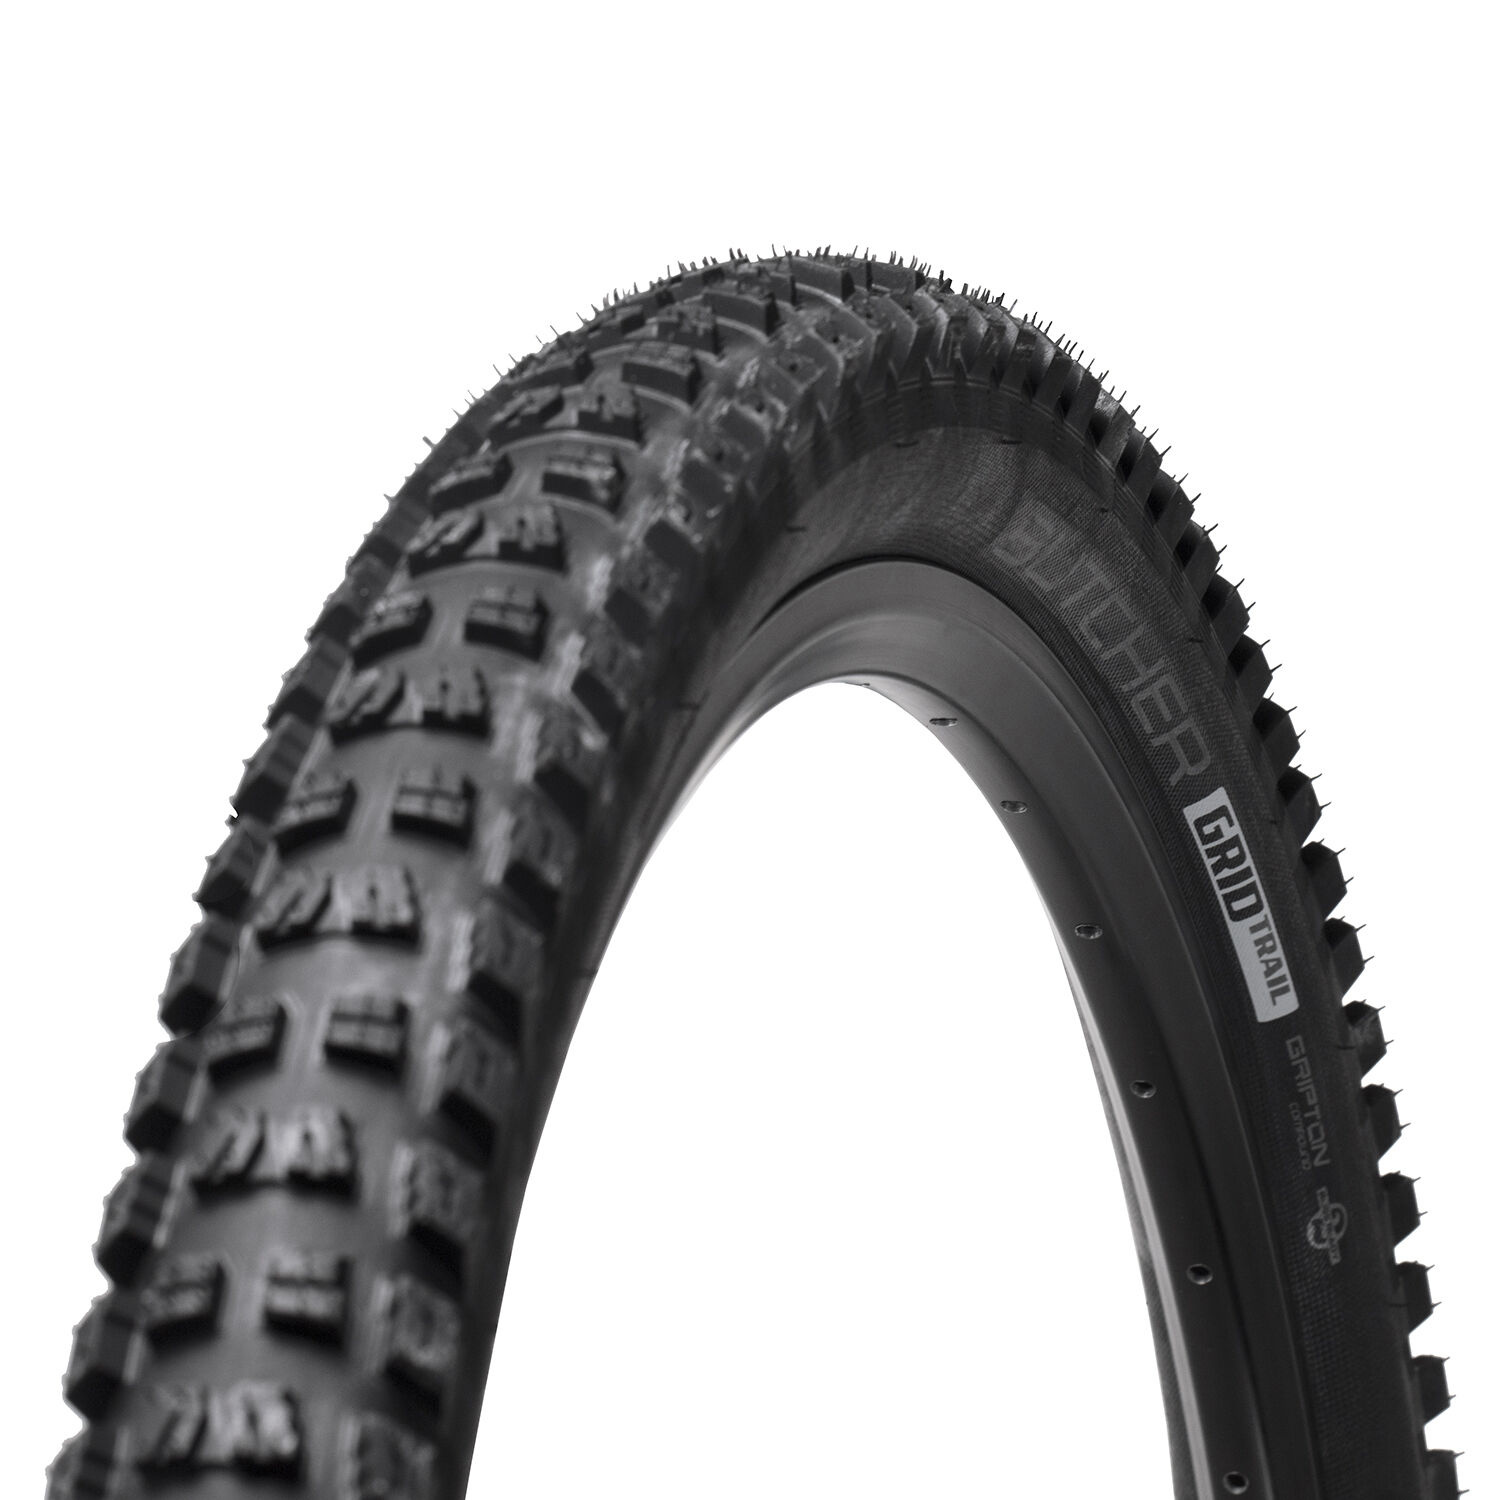 Specialized BUTCHER GRID TRAIL 2BR TYRE